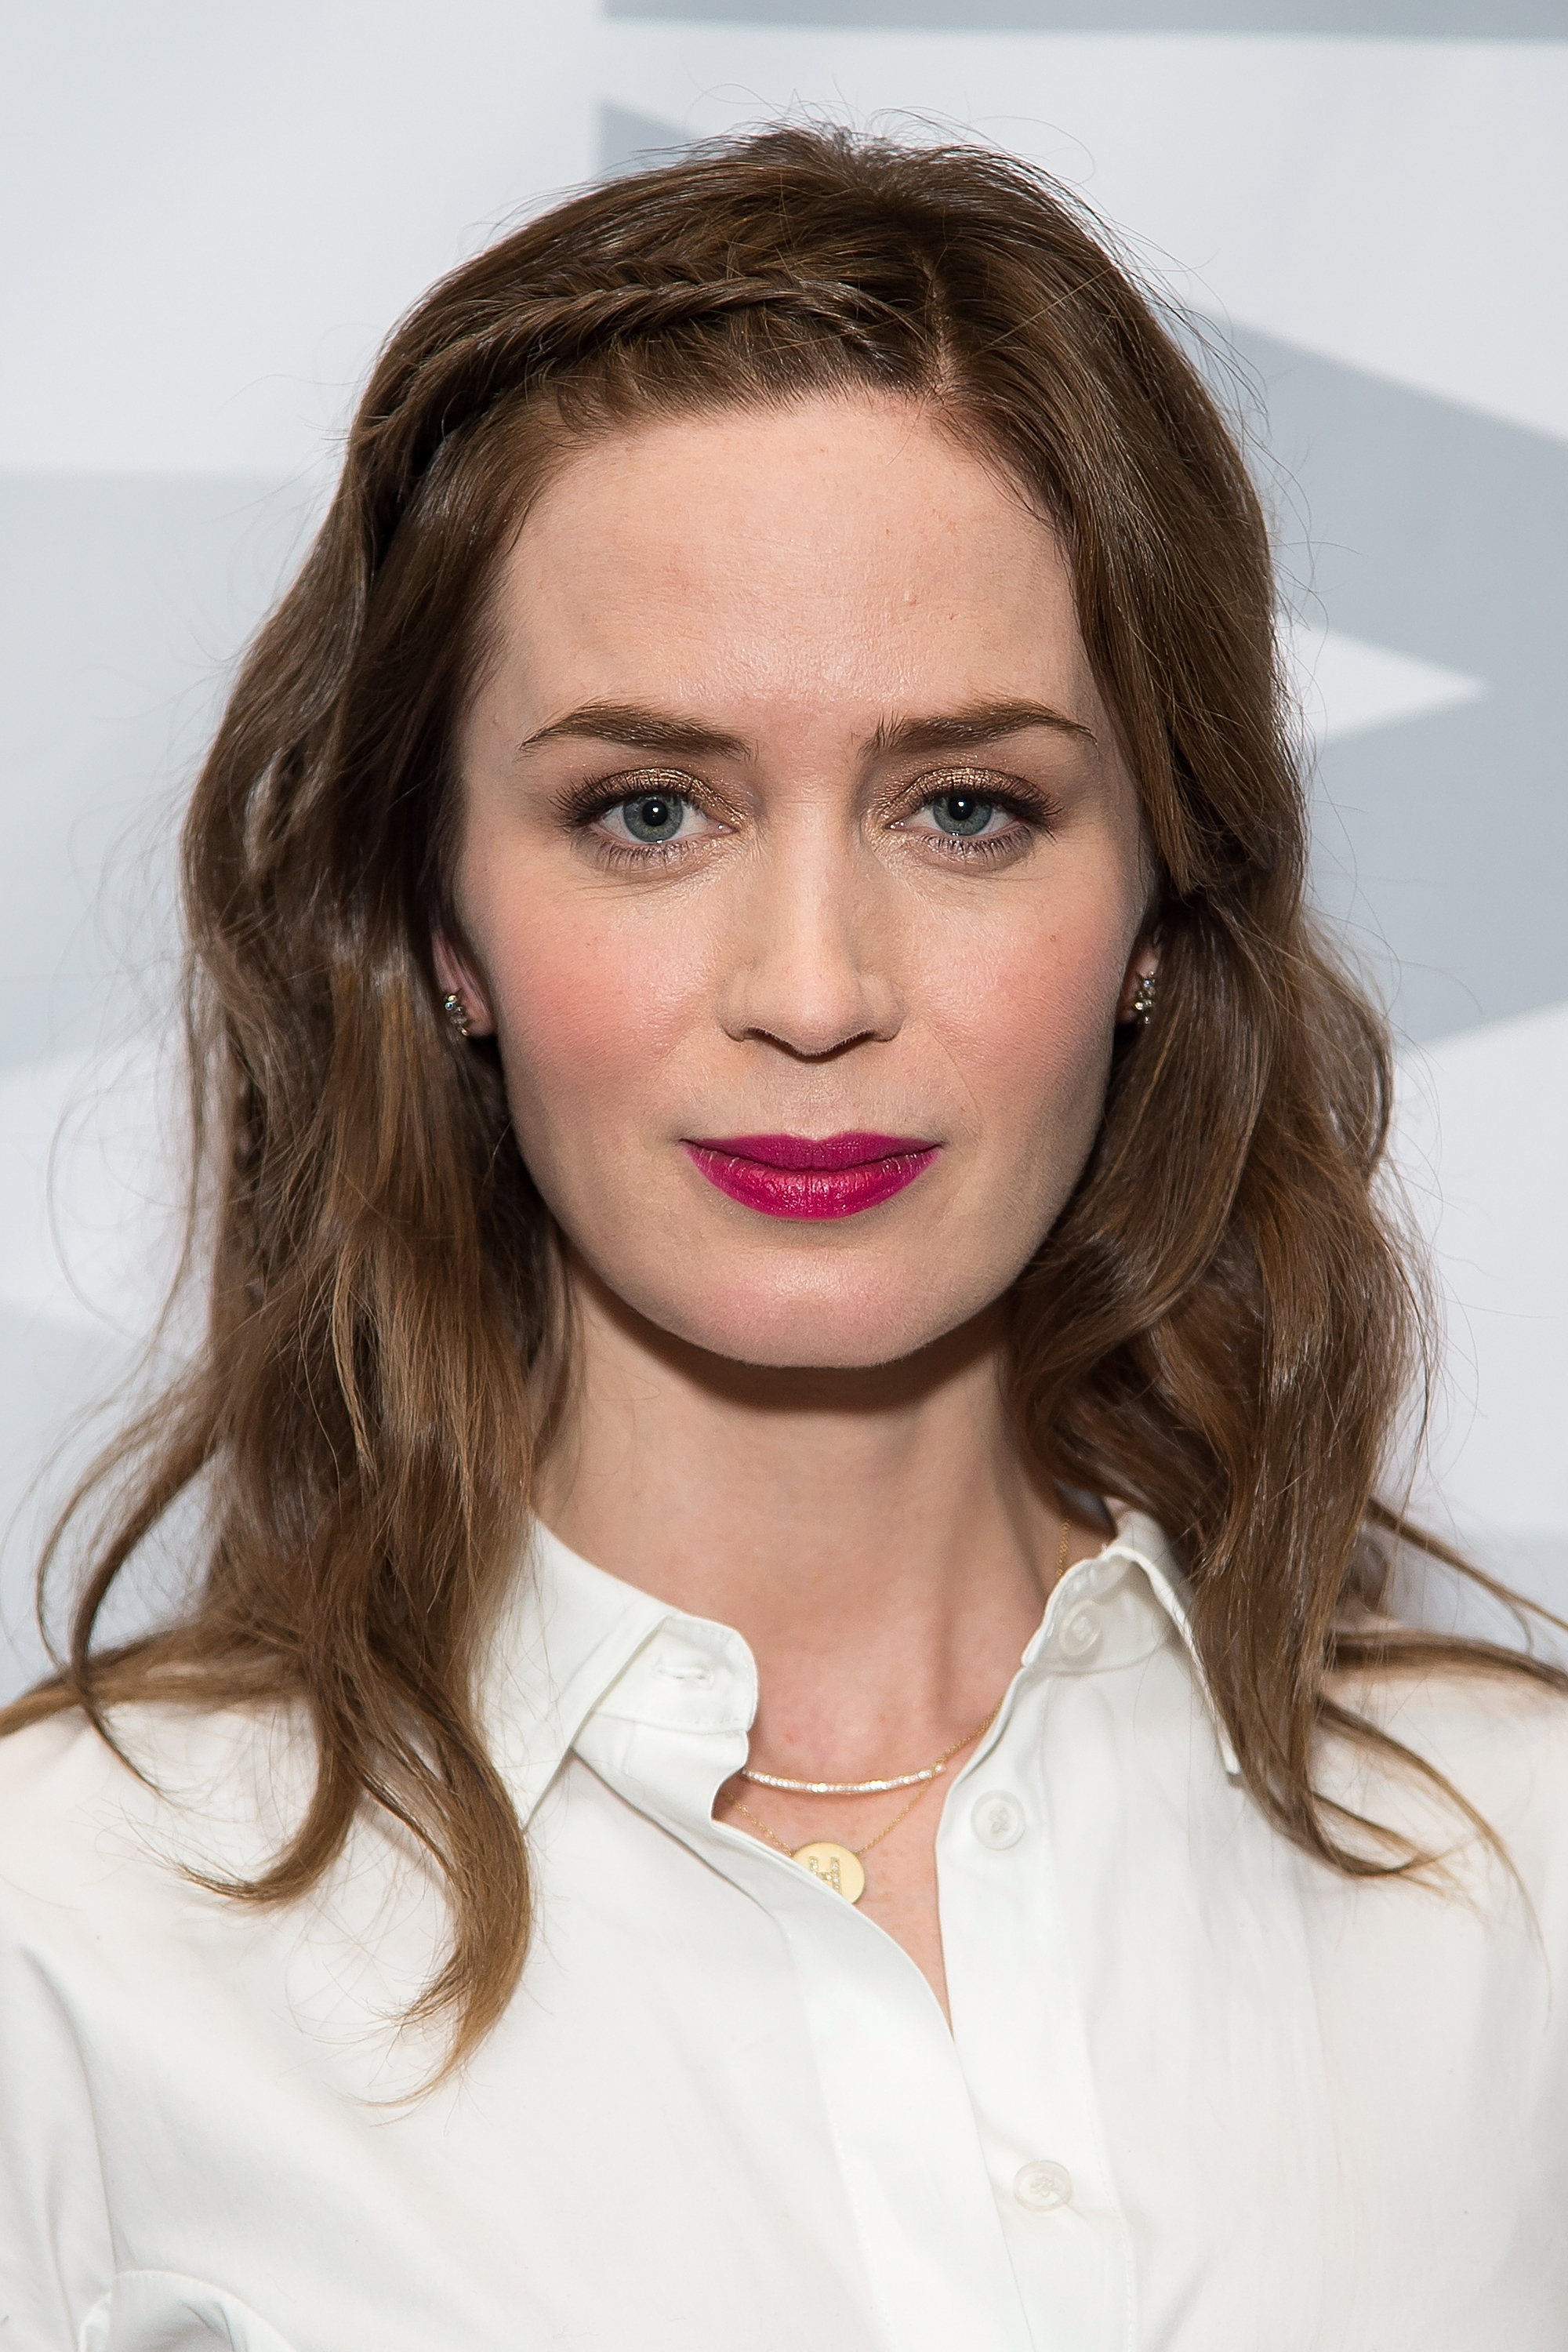 Medium hairstyles: 23 celebrity looks to try Emily Blunt